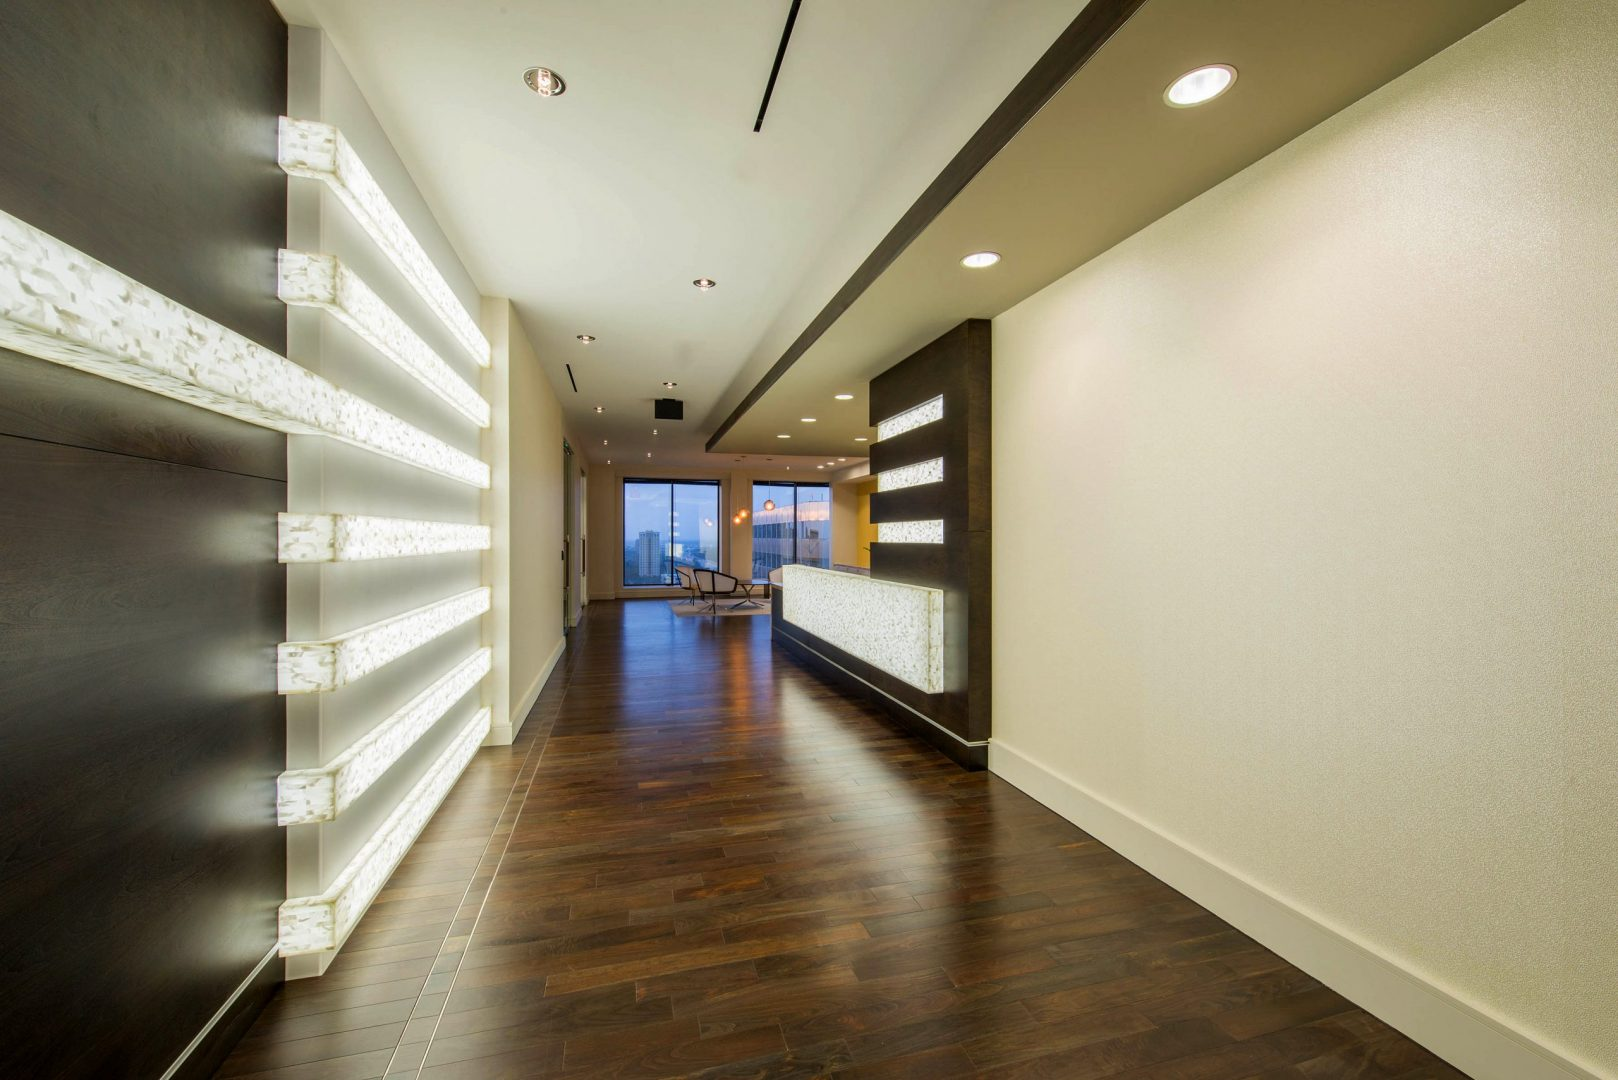 Corporate Law Interior Design Heard Robins Cloud and Black Corridor Linear Lighting Modern Bright